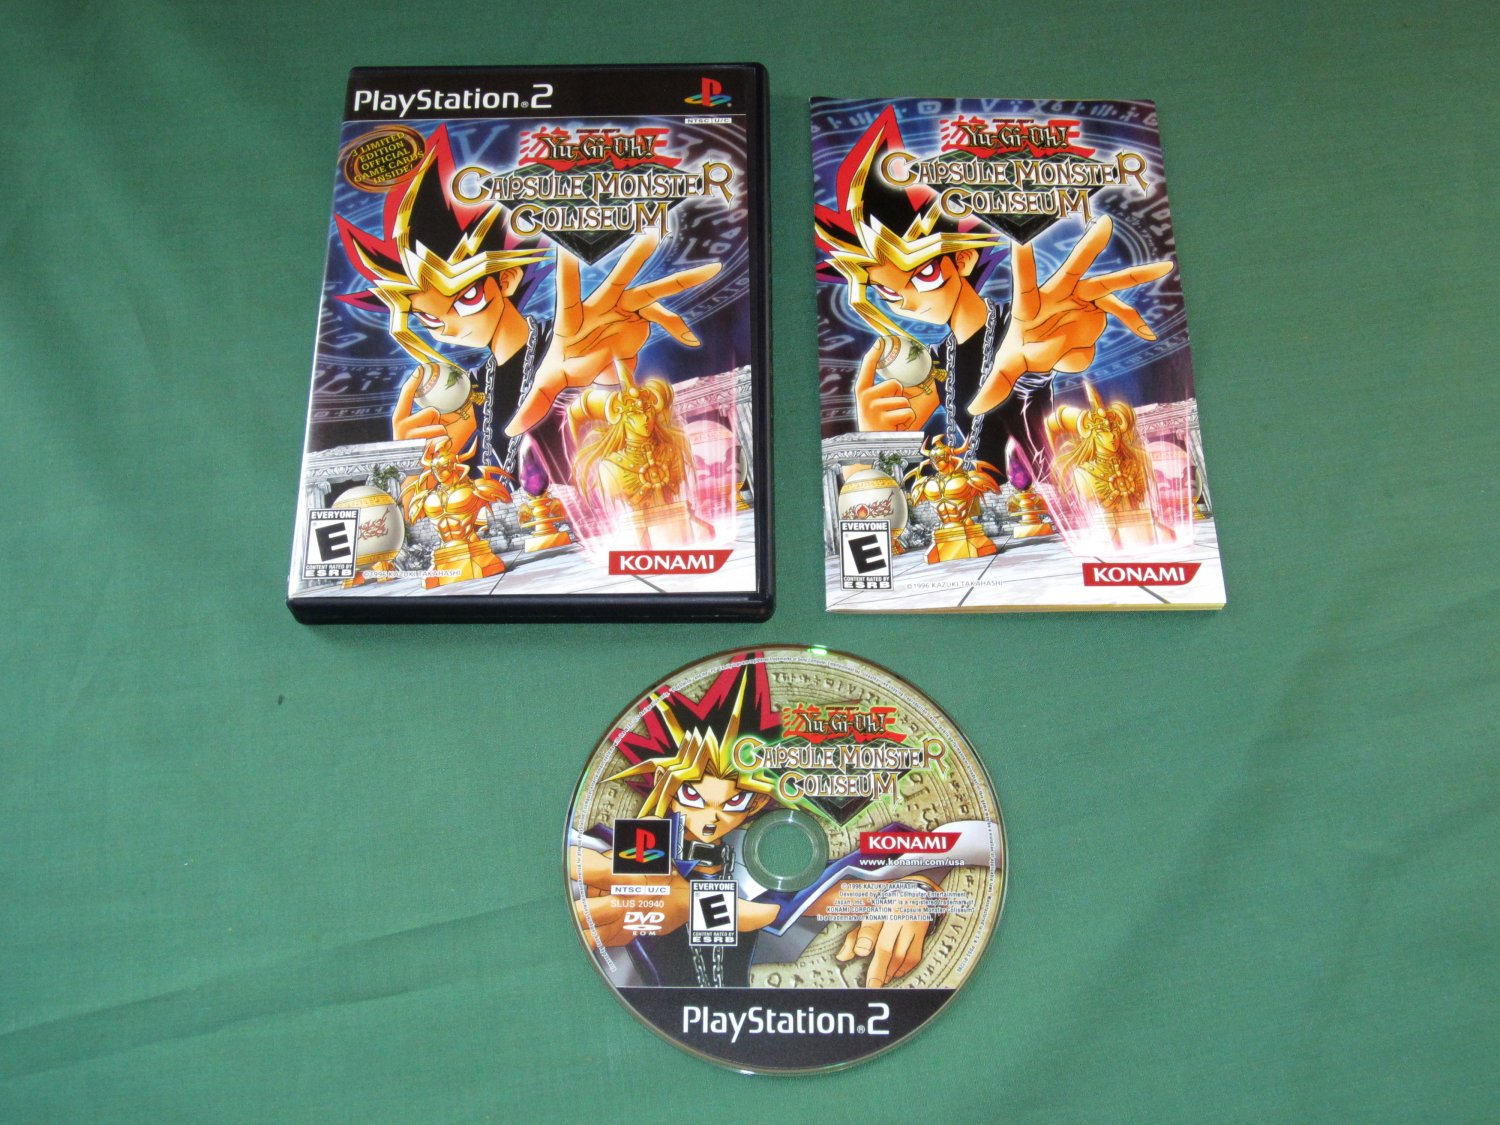 Yu-Gi-Oh! Capsule Monster Coliseum (Playstation 2)